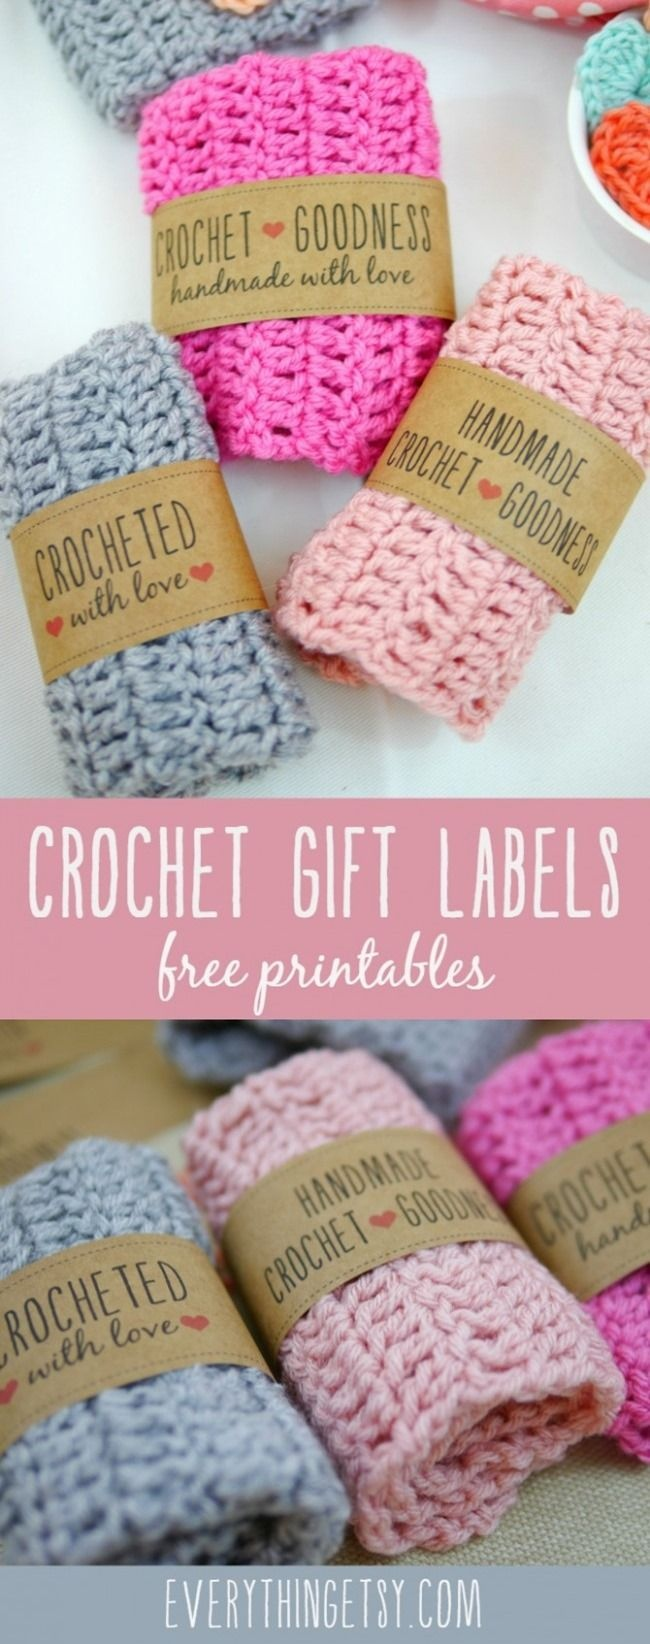 10 Free Crochet Patterns For A Coffee Cozy…or Two | Crochet - Free Printable Crochet Patterns